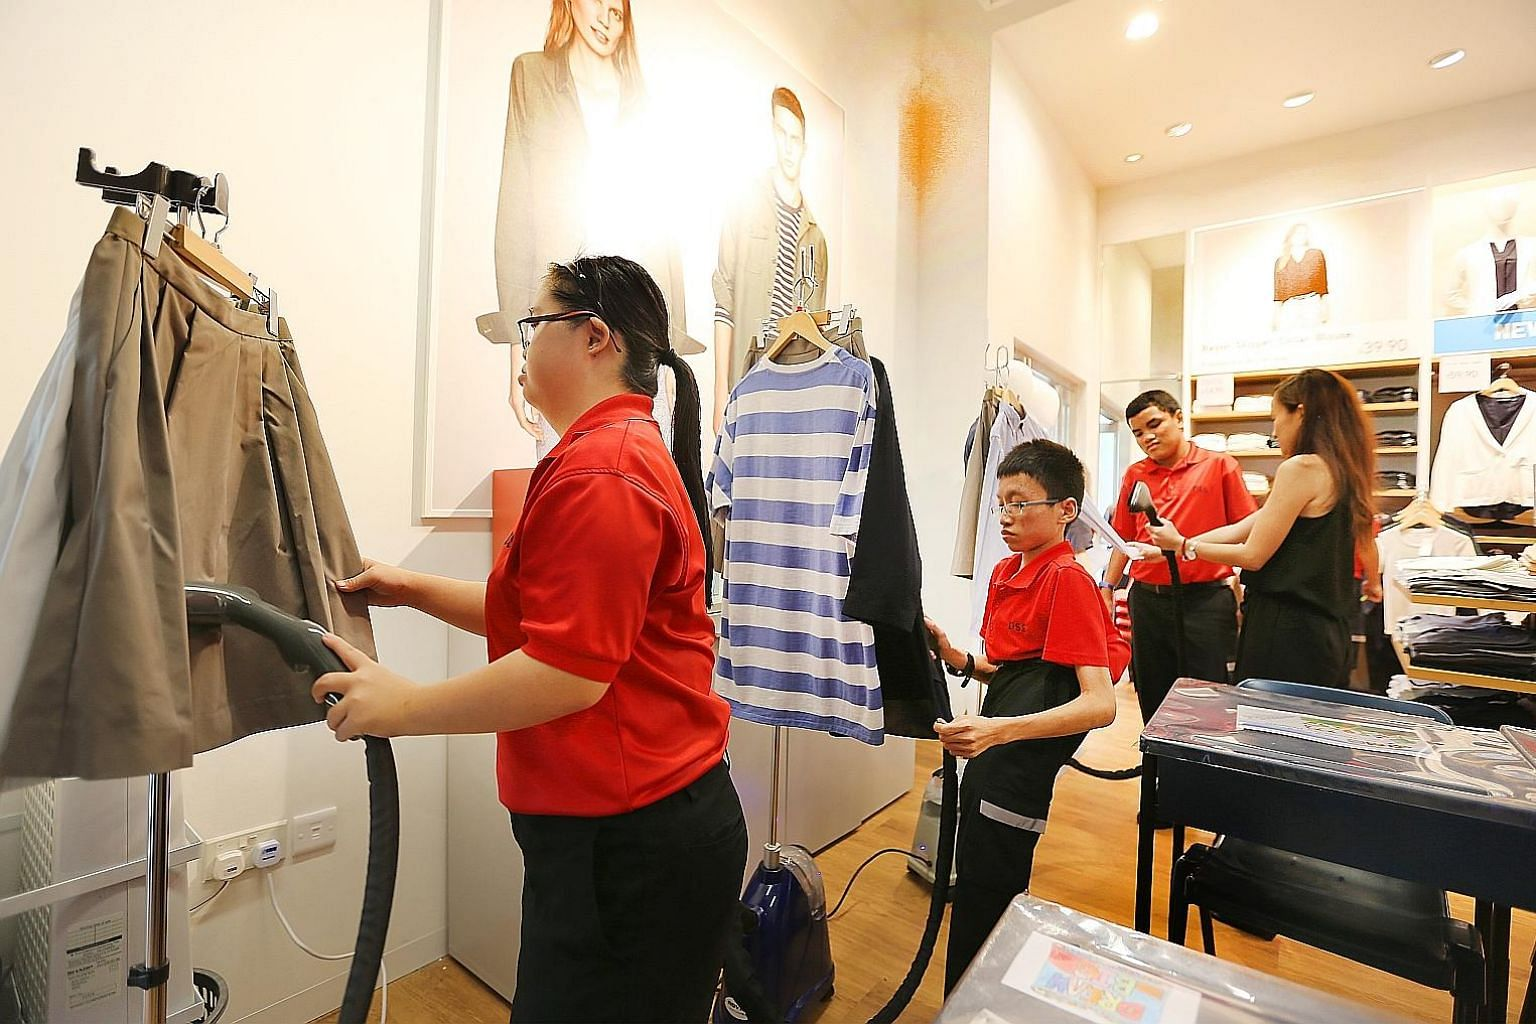 At Retail@DSS, students learn how to fold and arrange clothes, iron them with a clothes steamer, and manage the fitting room, among other tasks.